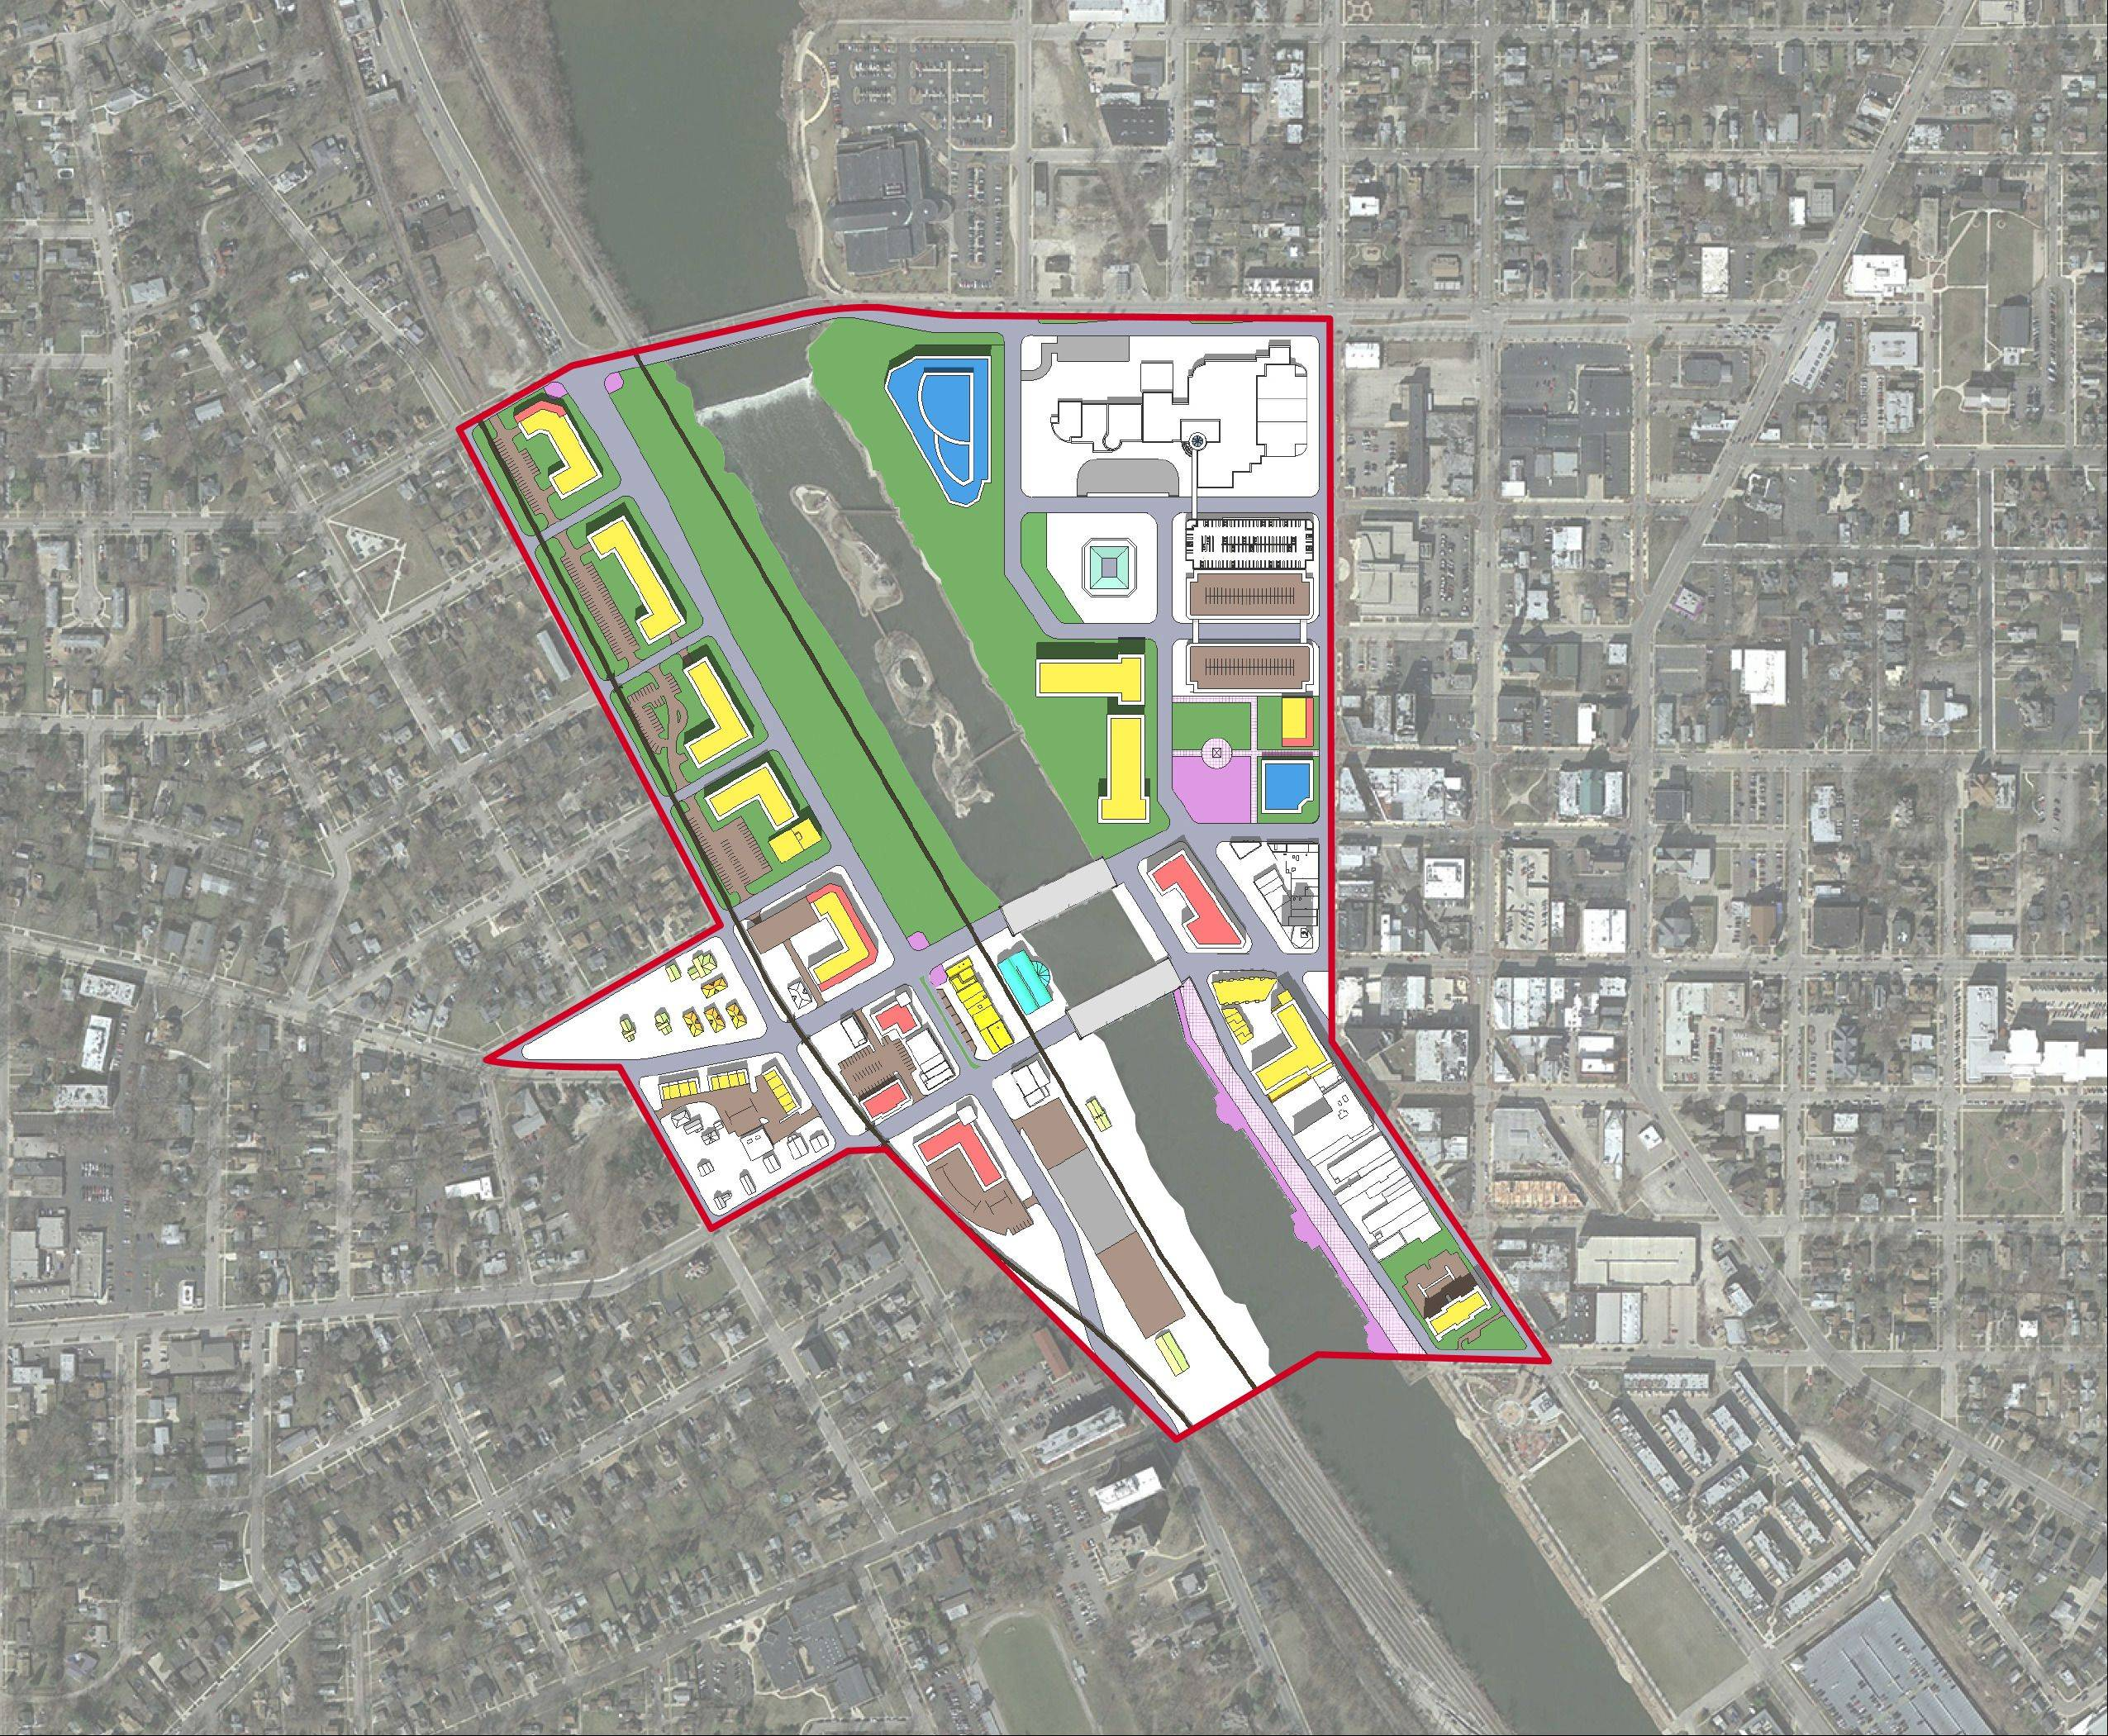 An initial draft plan for the Elgin Chicago Street Station Area Plan includes looking at opportunities for redevelopment while increasing RTA ridership. The plan is funded by an RTA grant with a contribution from the city of Elgin.